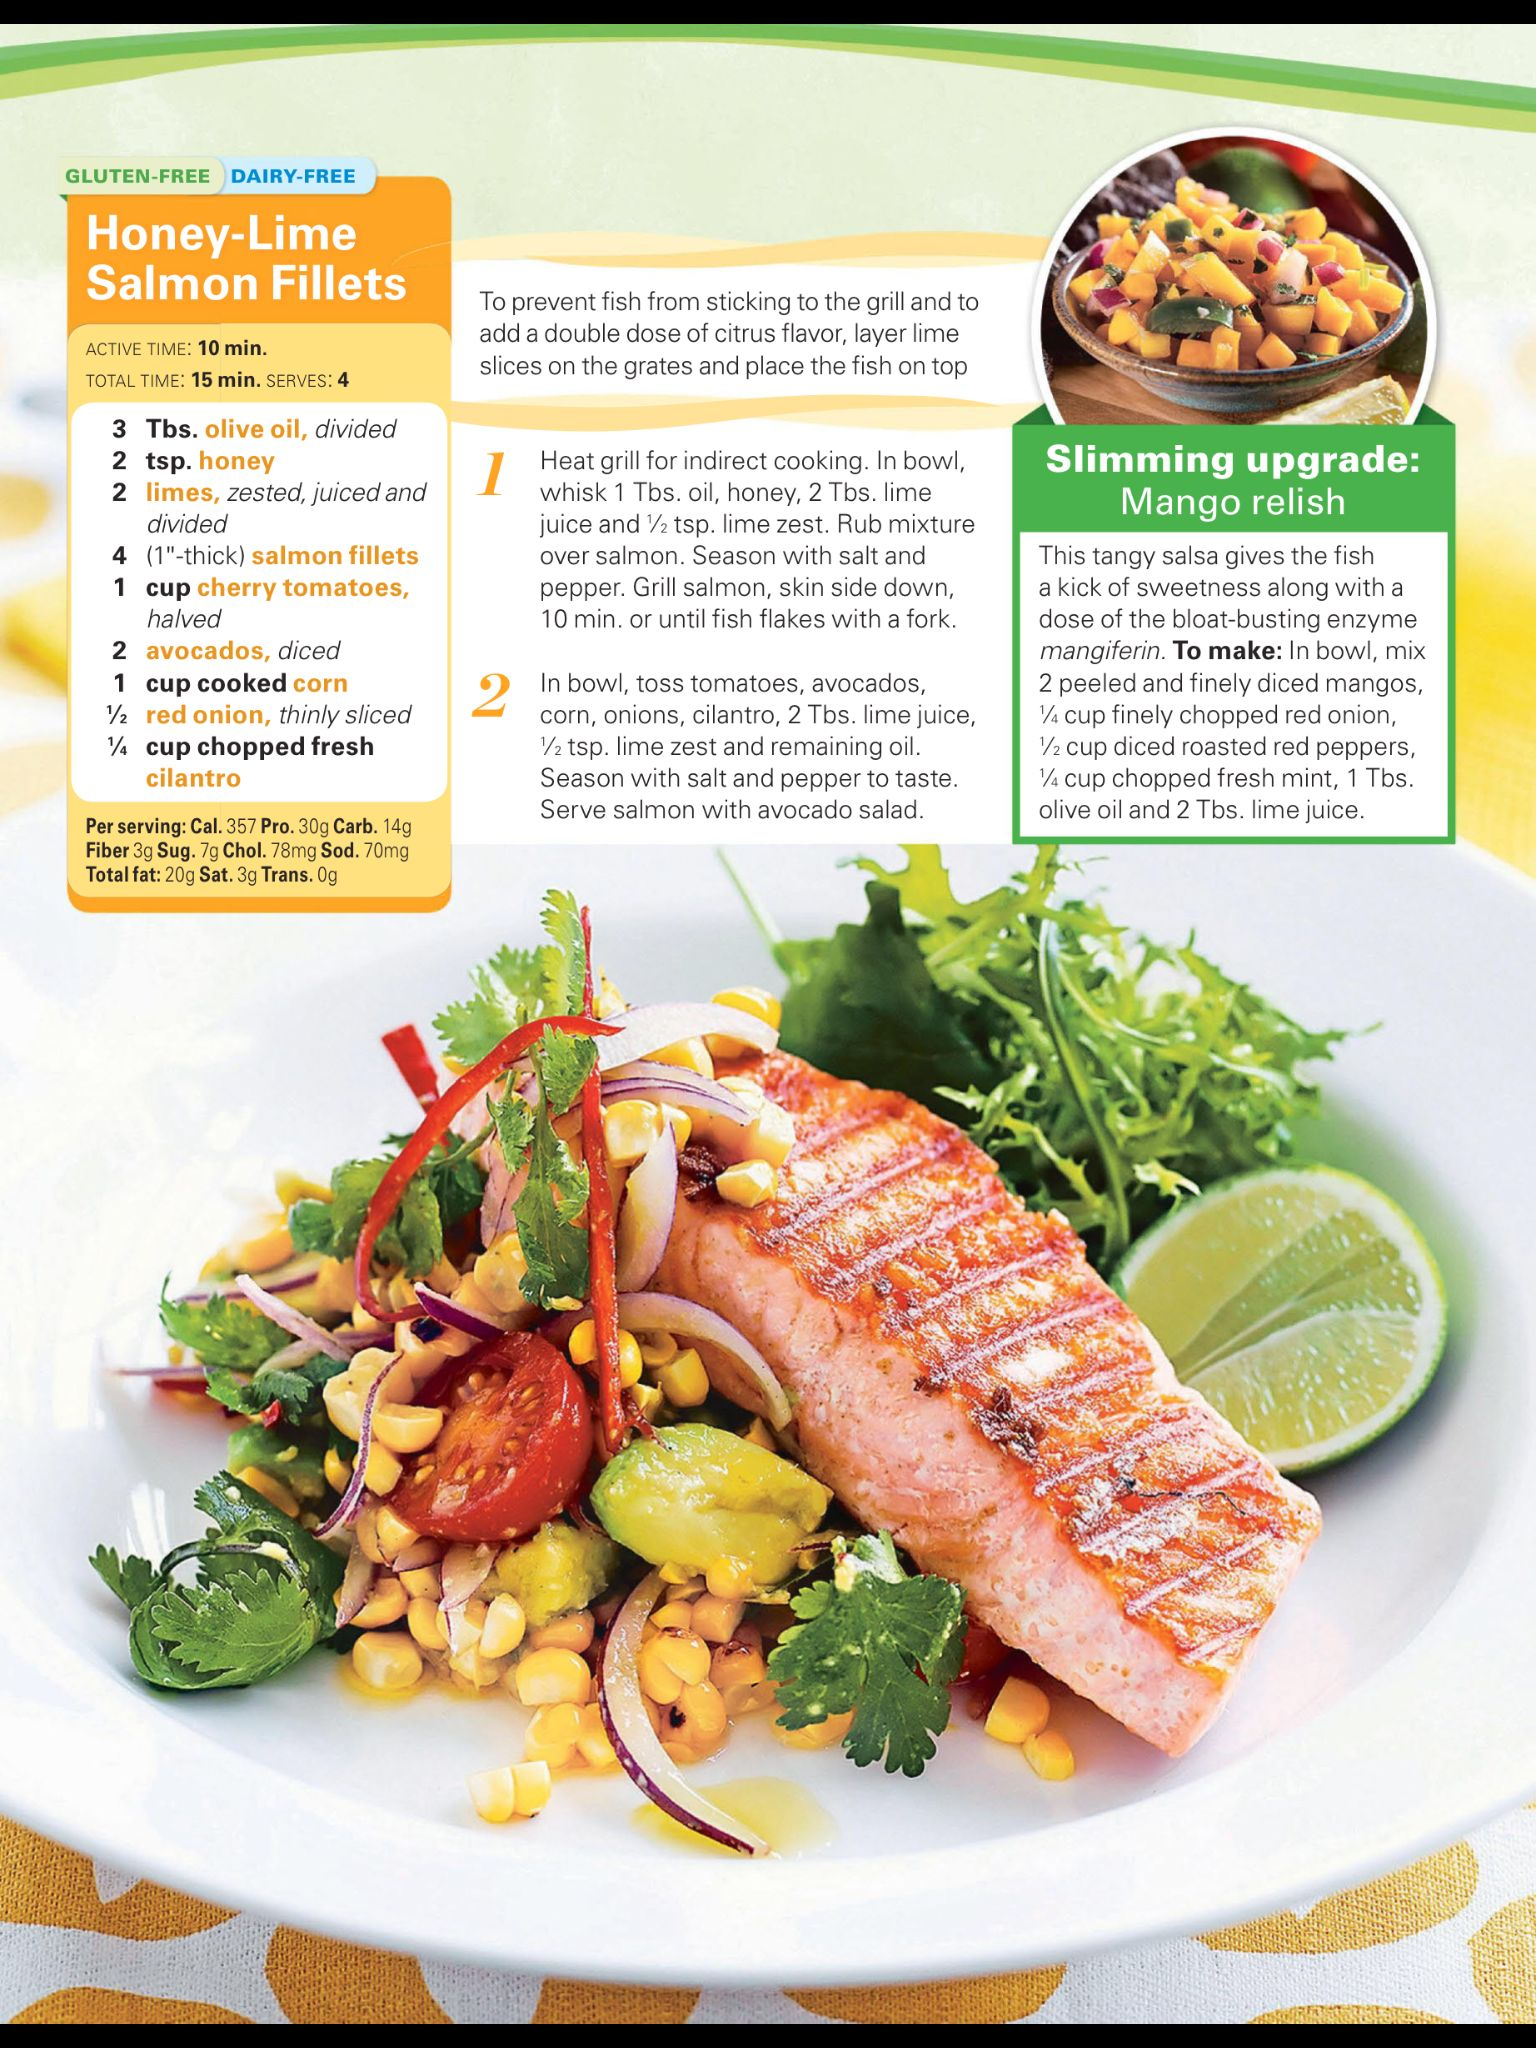 15 minute dinners from first for women june 11 2018 read it on